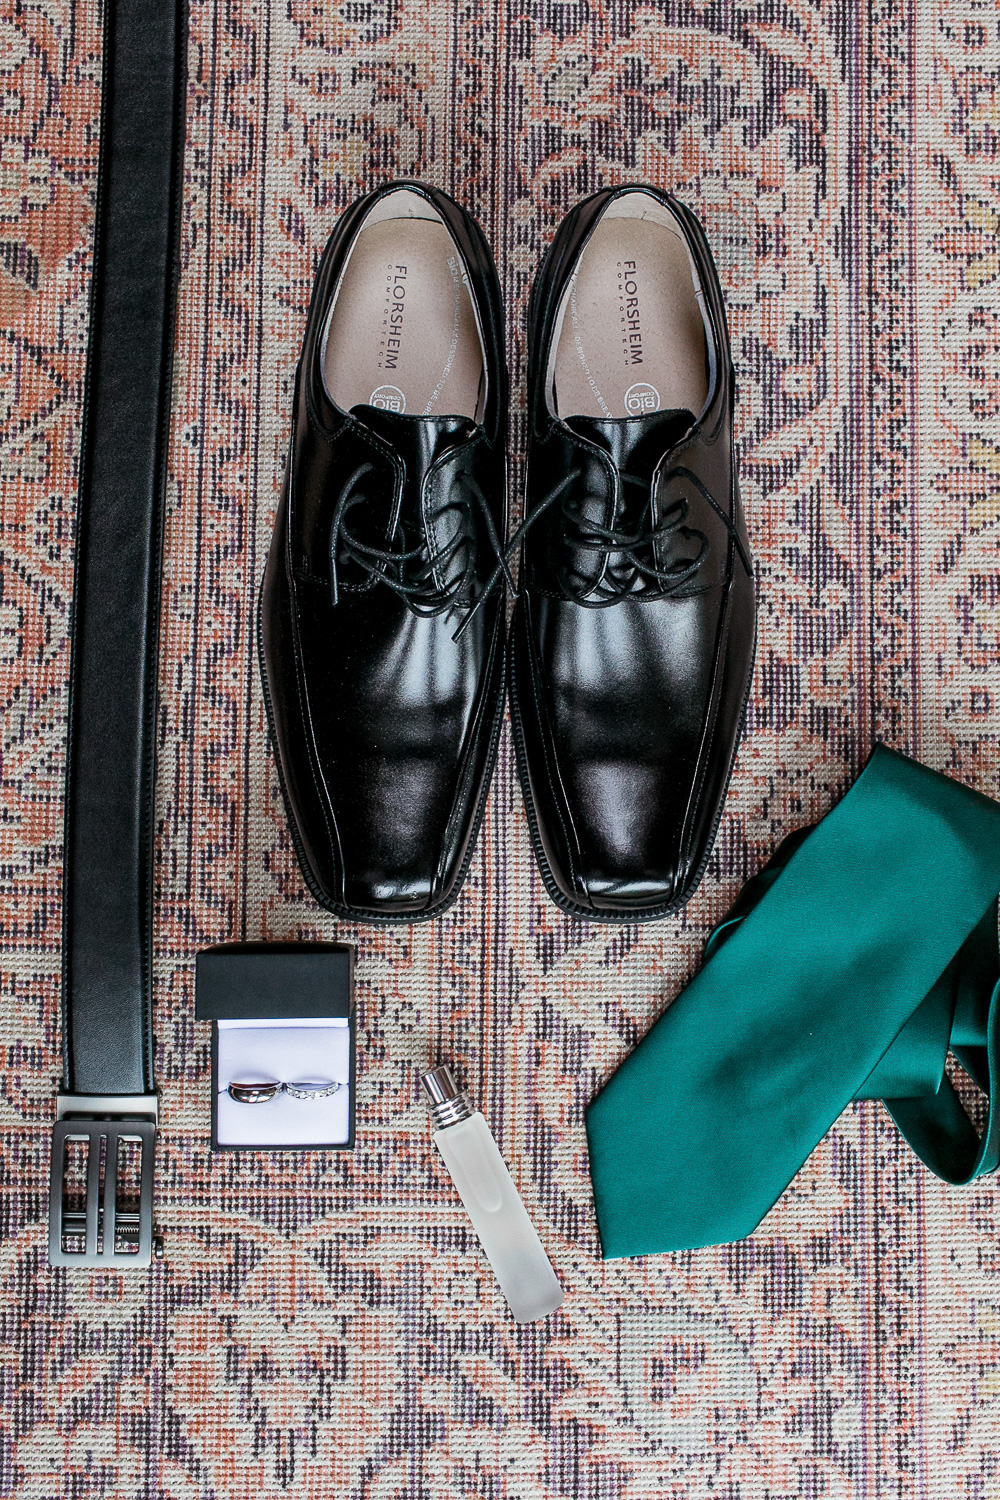 Details of groom's shoes, green tie, belt, rings on a one hundred year old vintage rug